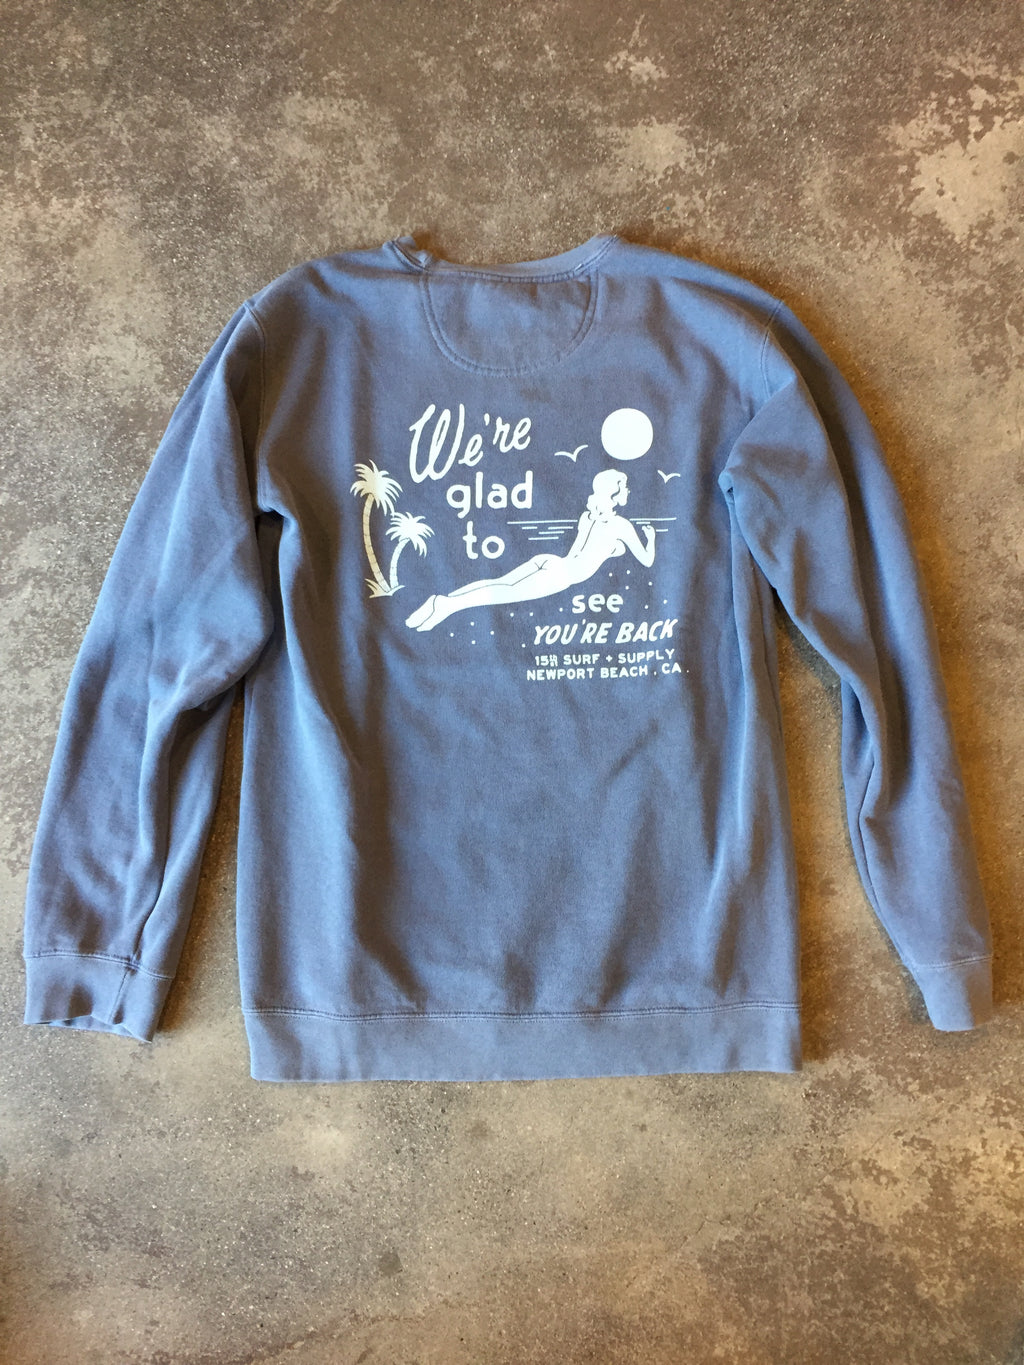 15th St Men's Glad To See You're Back Crewneck Fleece Faded Vintage Denim